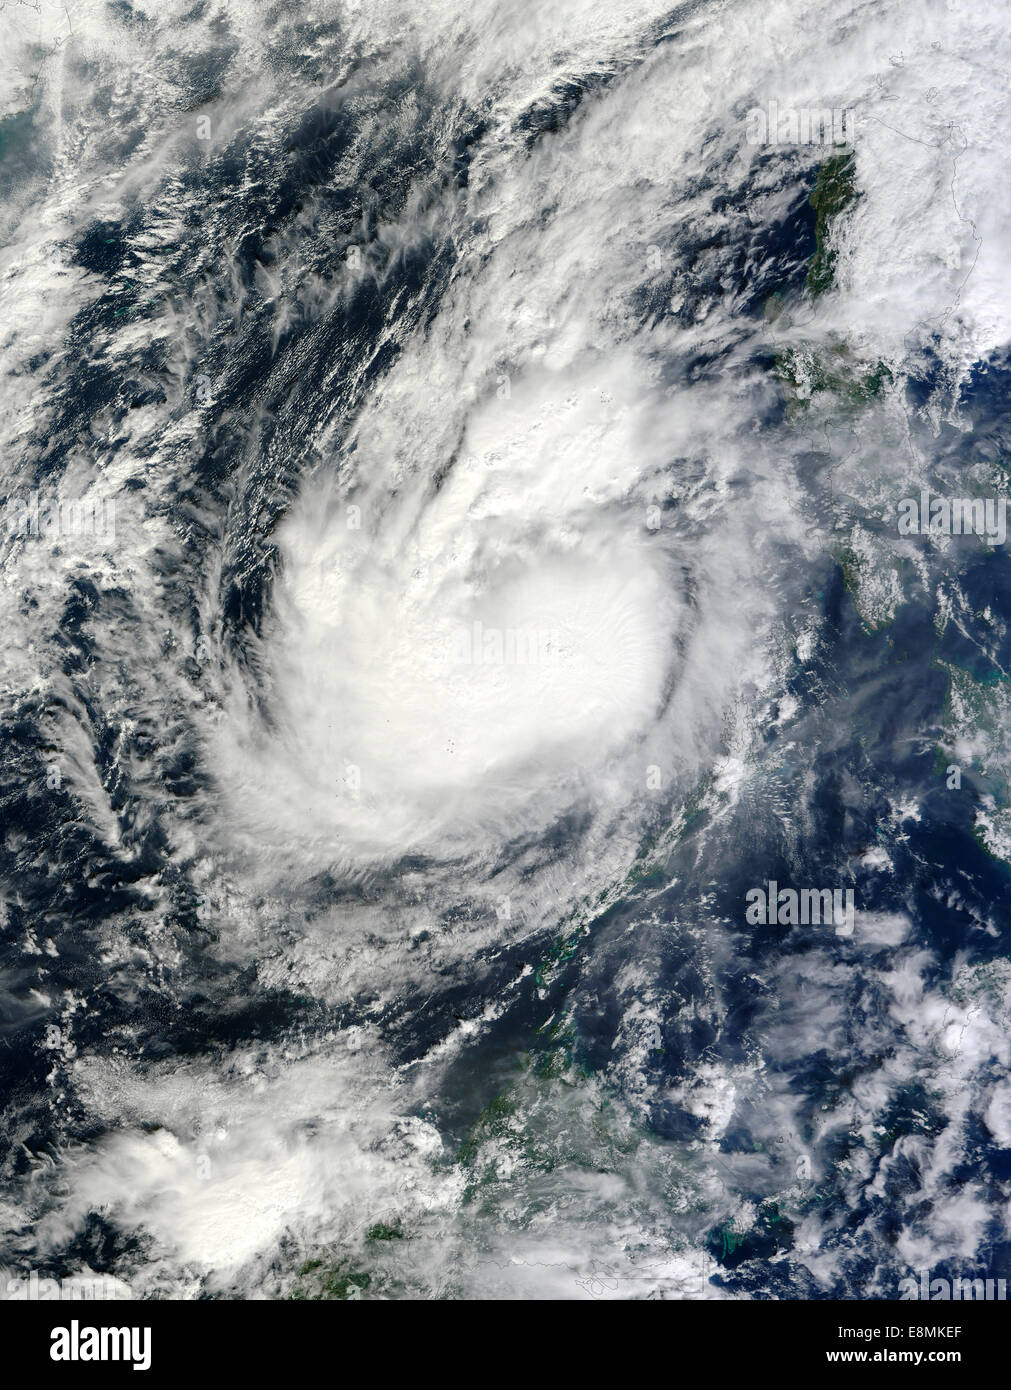 December 6, 2012 - Typhoon Bopha over the South China Sea after passing over the southern Philippines and island - Stock Image